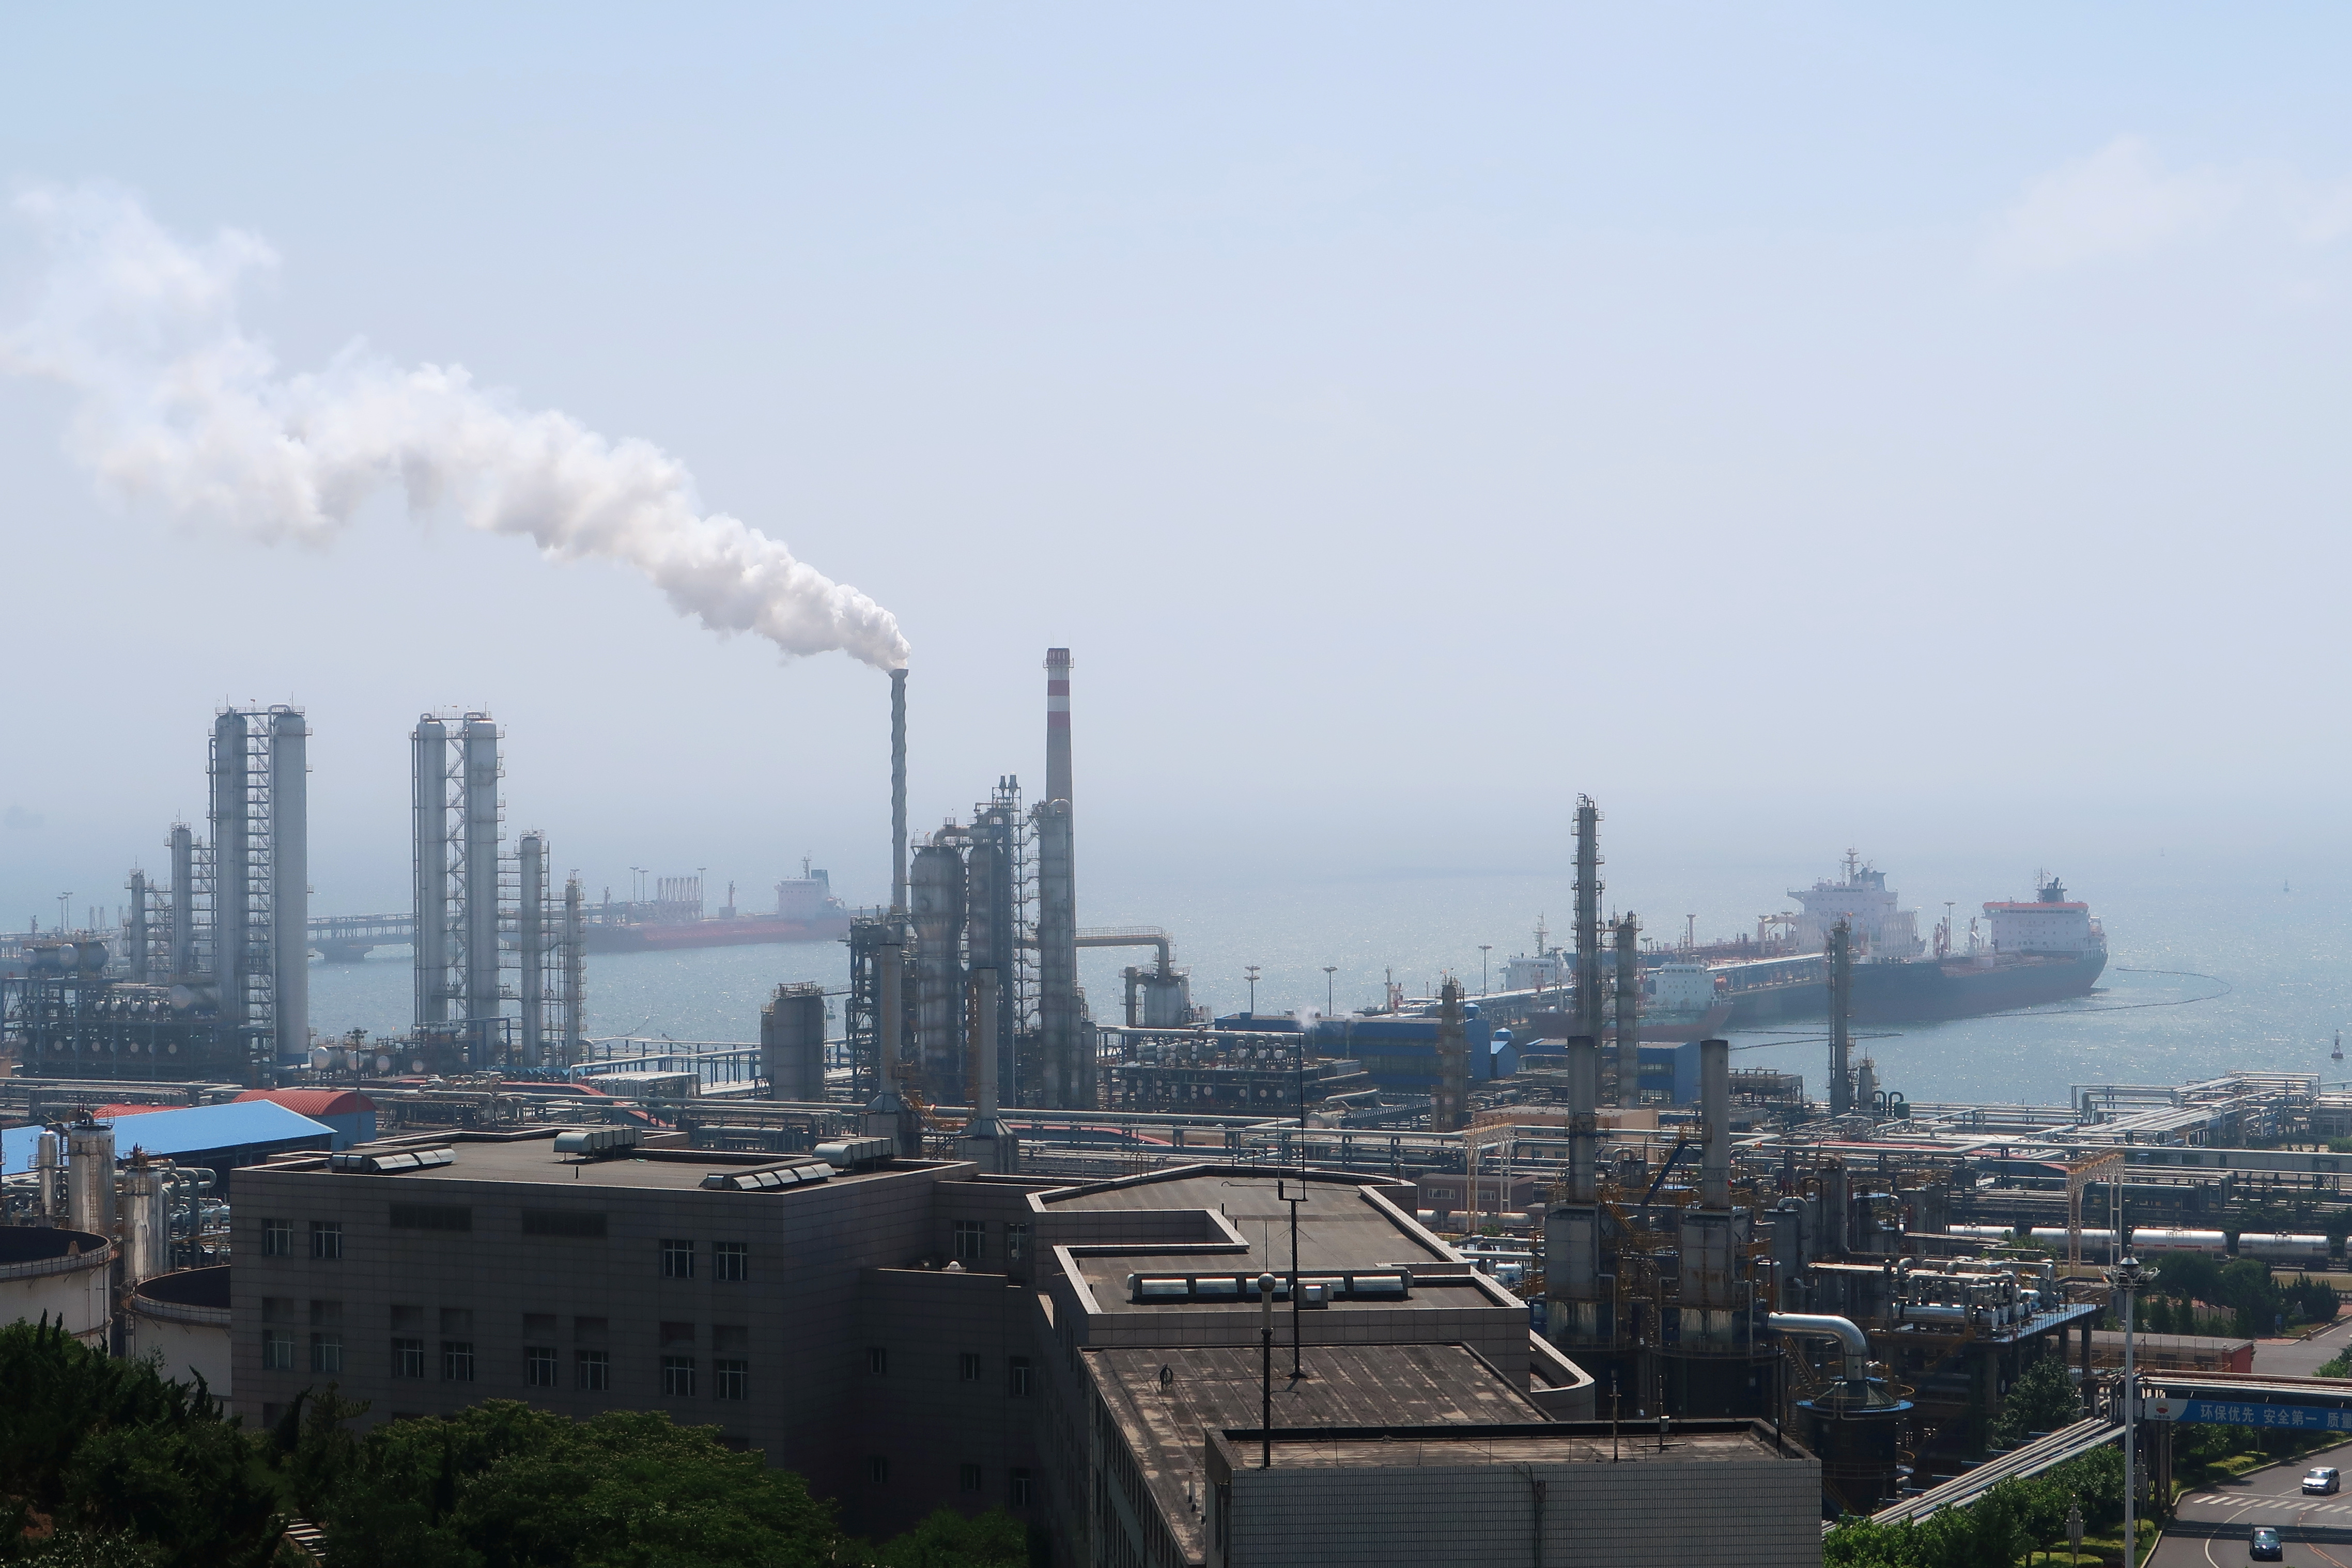 China National Petroleum Corporation (CNPC)'s Dalian Petrochemical Corp refinery is seen near the downtown of Dalian in Liaoning province, China July 17, 2018. Picture taken July 17, 2018. REUTERS/Chen Aizhu/Files